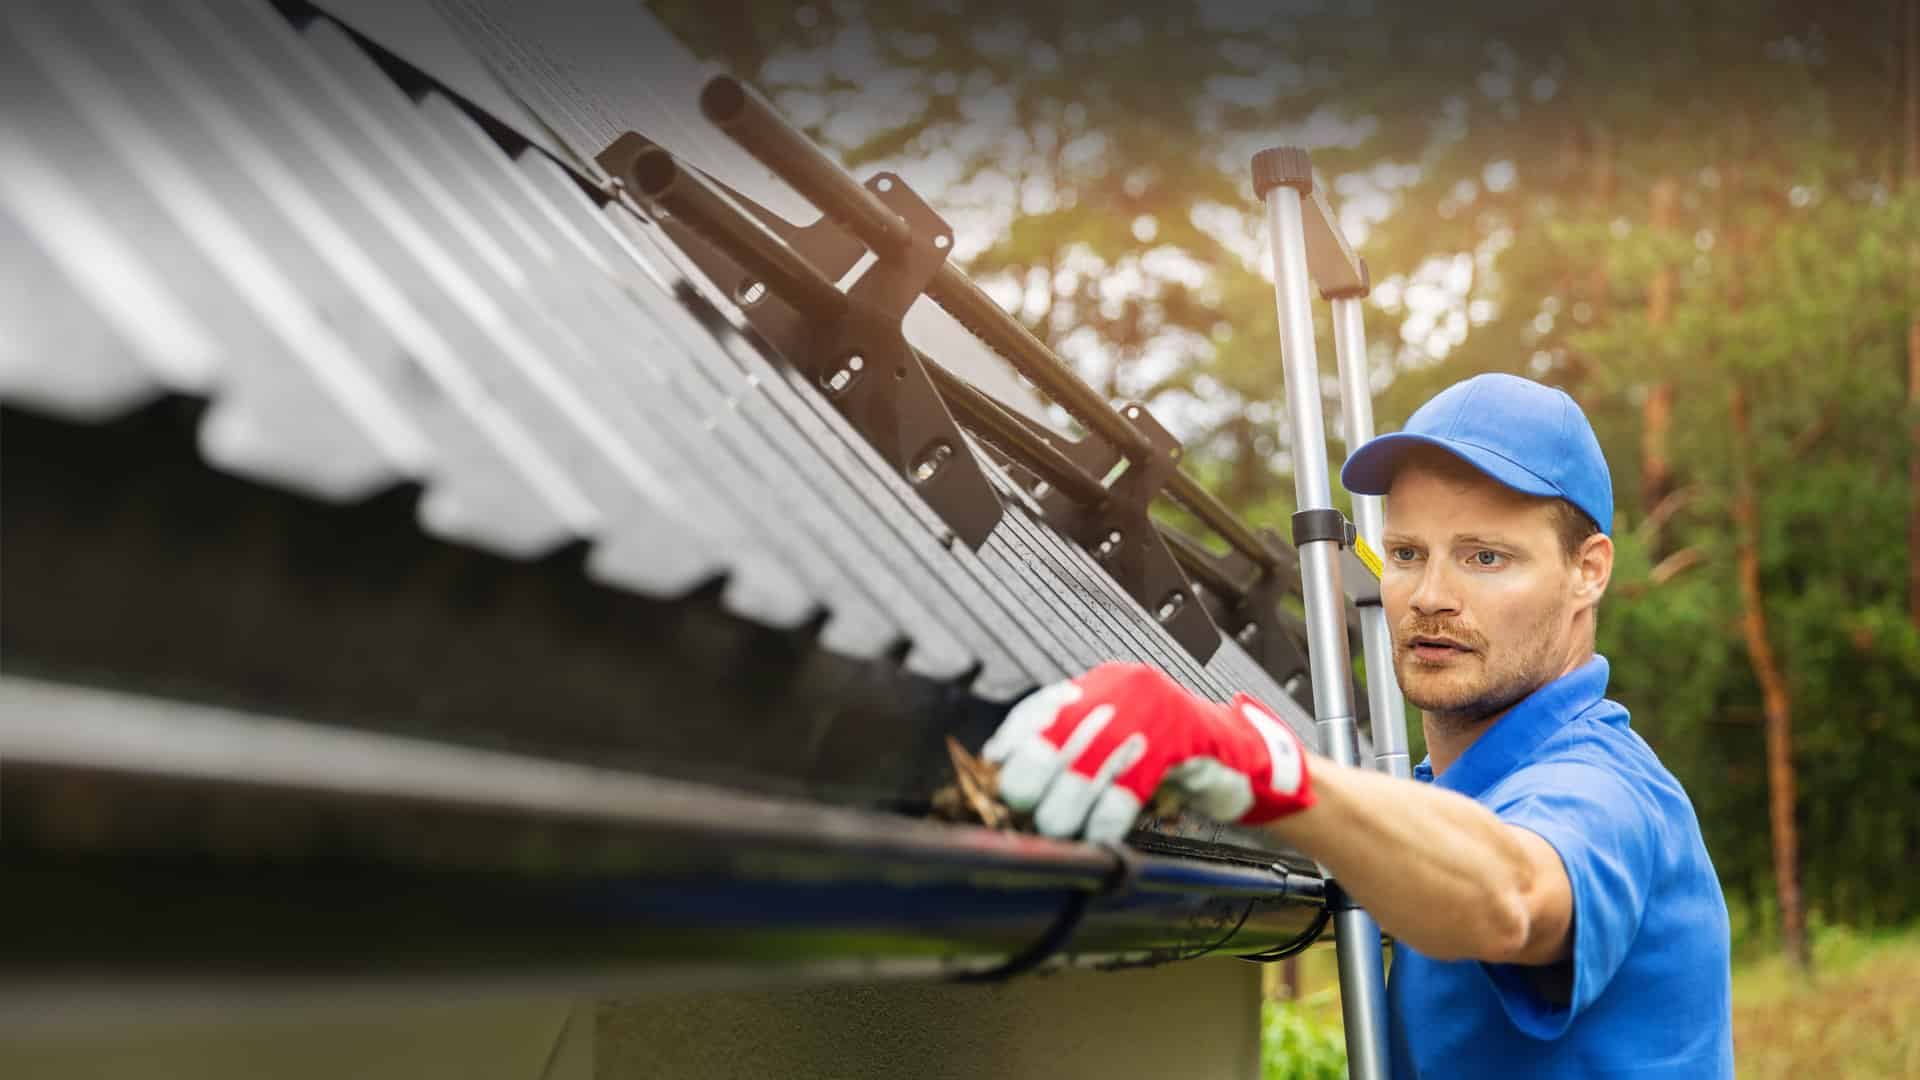 roof-and-driveway-cleaning-slider2-2.jpg